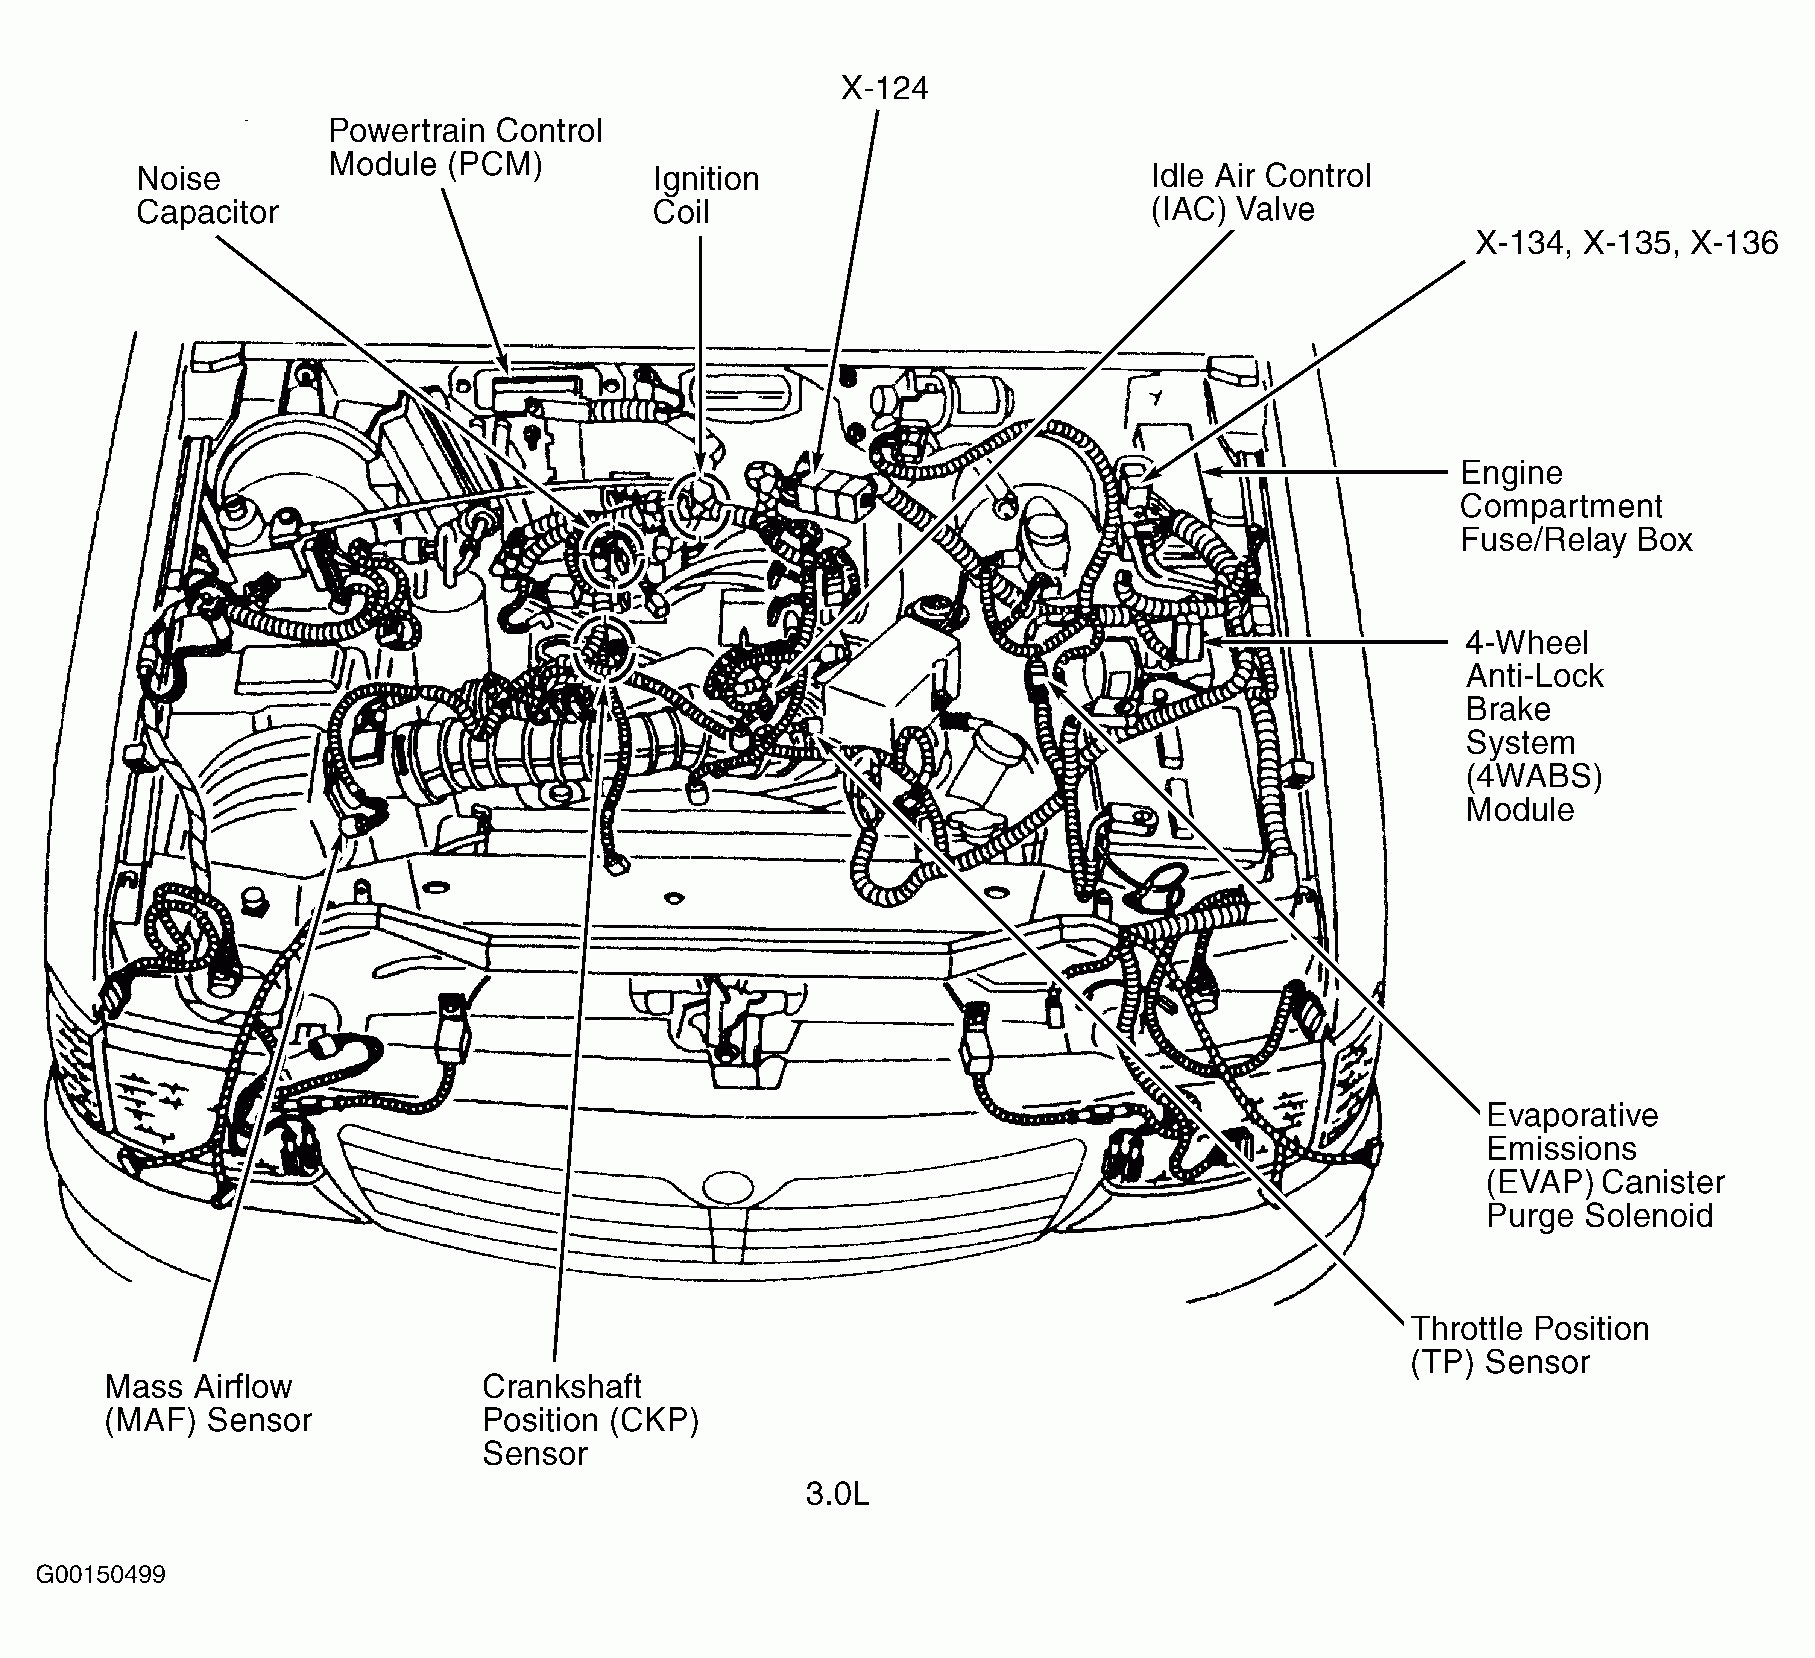 Harley Motor Diagram Mazda 6 Engine Diagram Data Schematics Wiring Diagram • Of Harley Motor Diagram